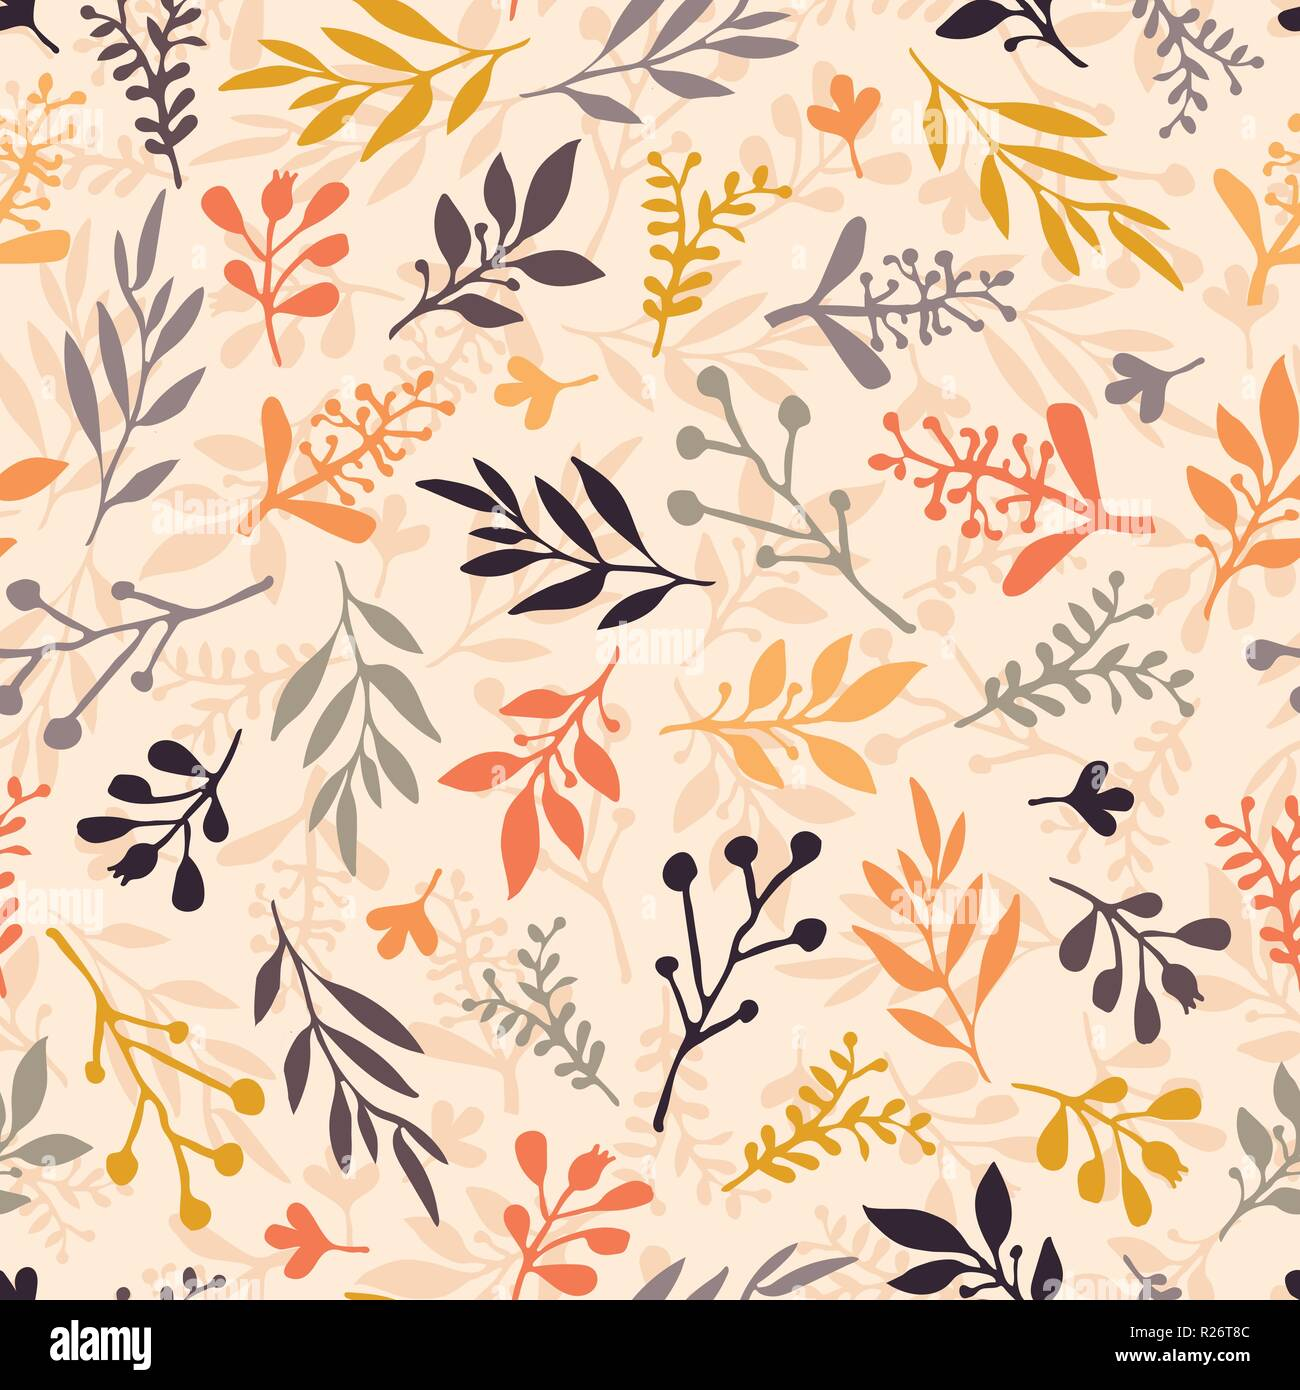 Seamless Vector Pattern With Abstract Leaves Orange Gold